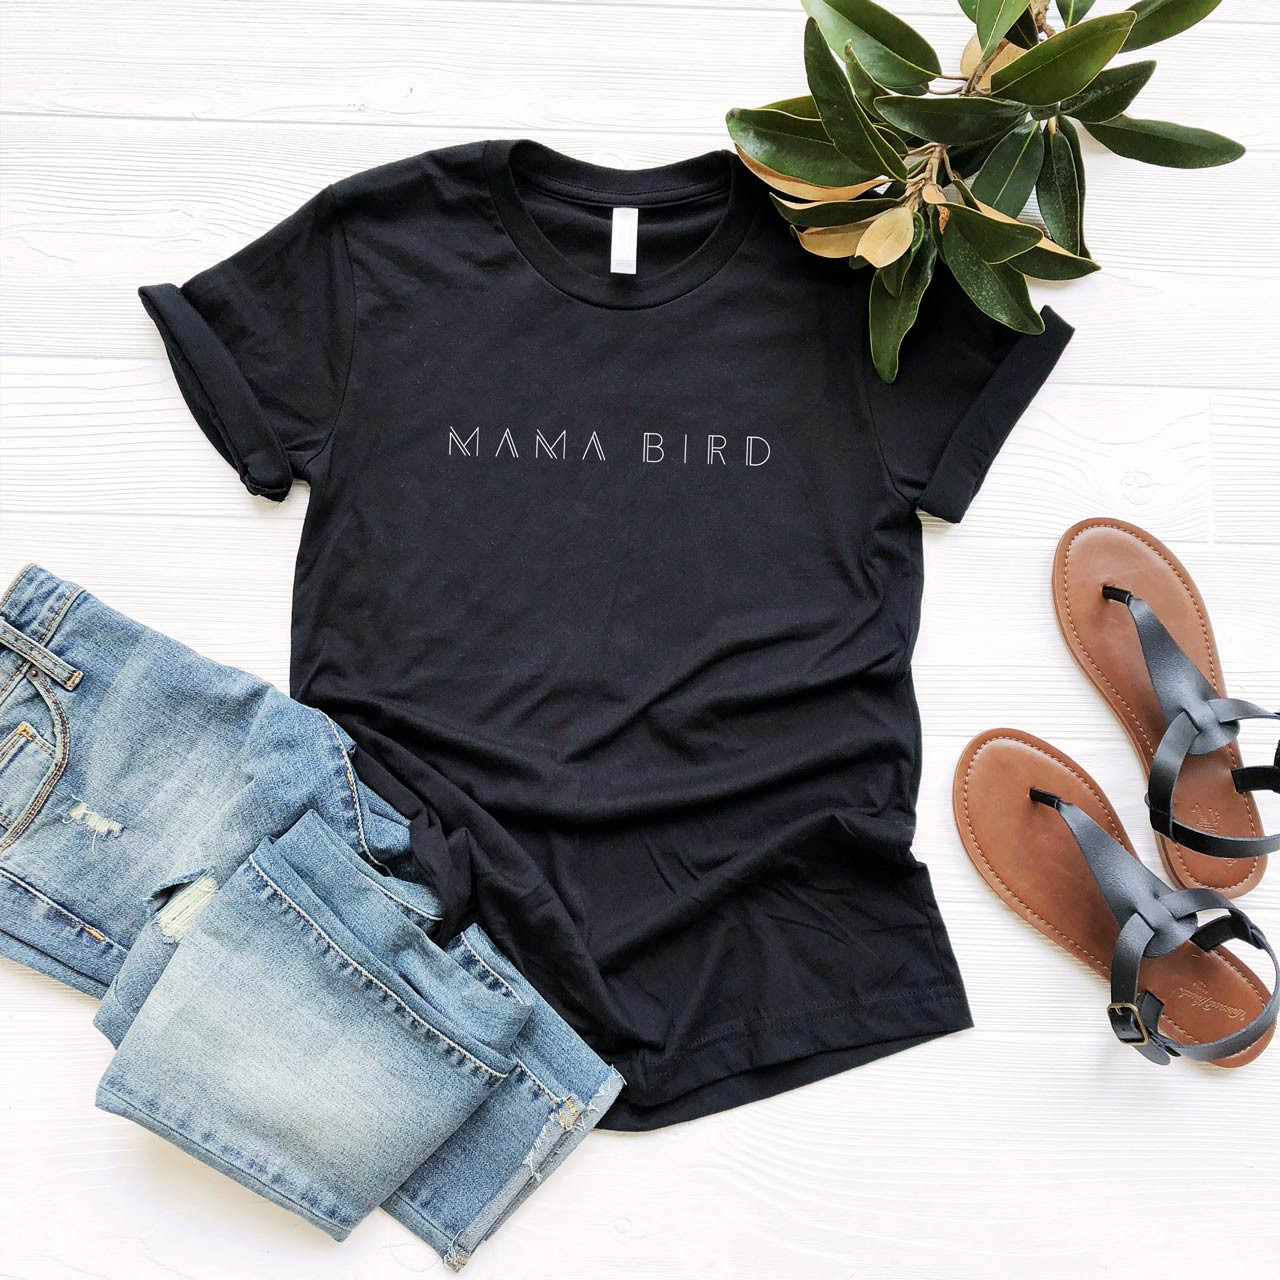 MAMA BIRD Cotton T-Shirt (White on Black) from The Printed Home